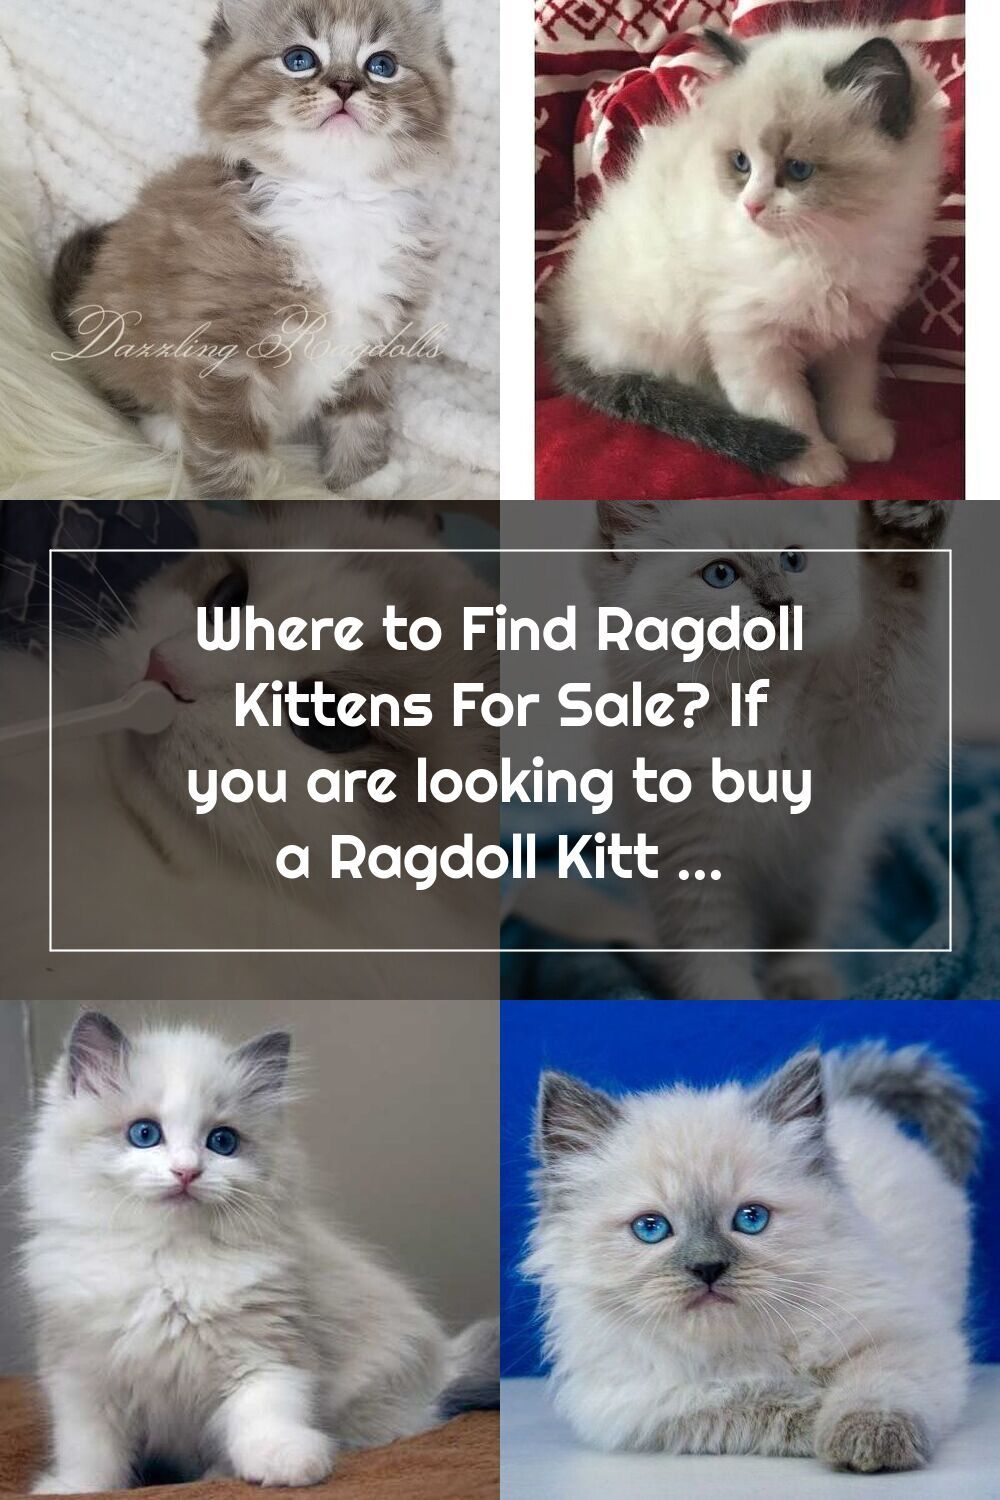 Where To Find Ragdoll Kittens For Sale In 2020 Ragdoll Kitten Kittens Cutest Ragdoll Kittens For Sale